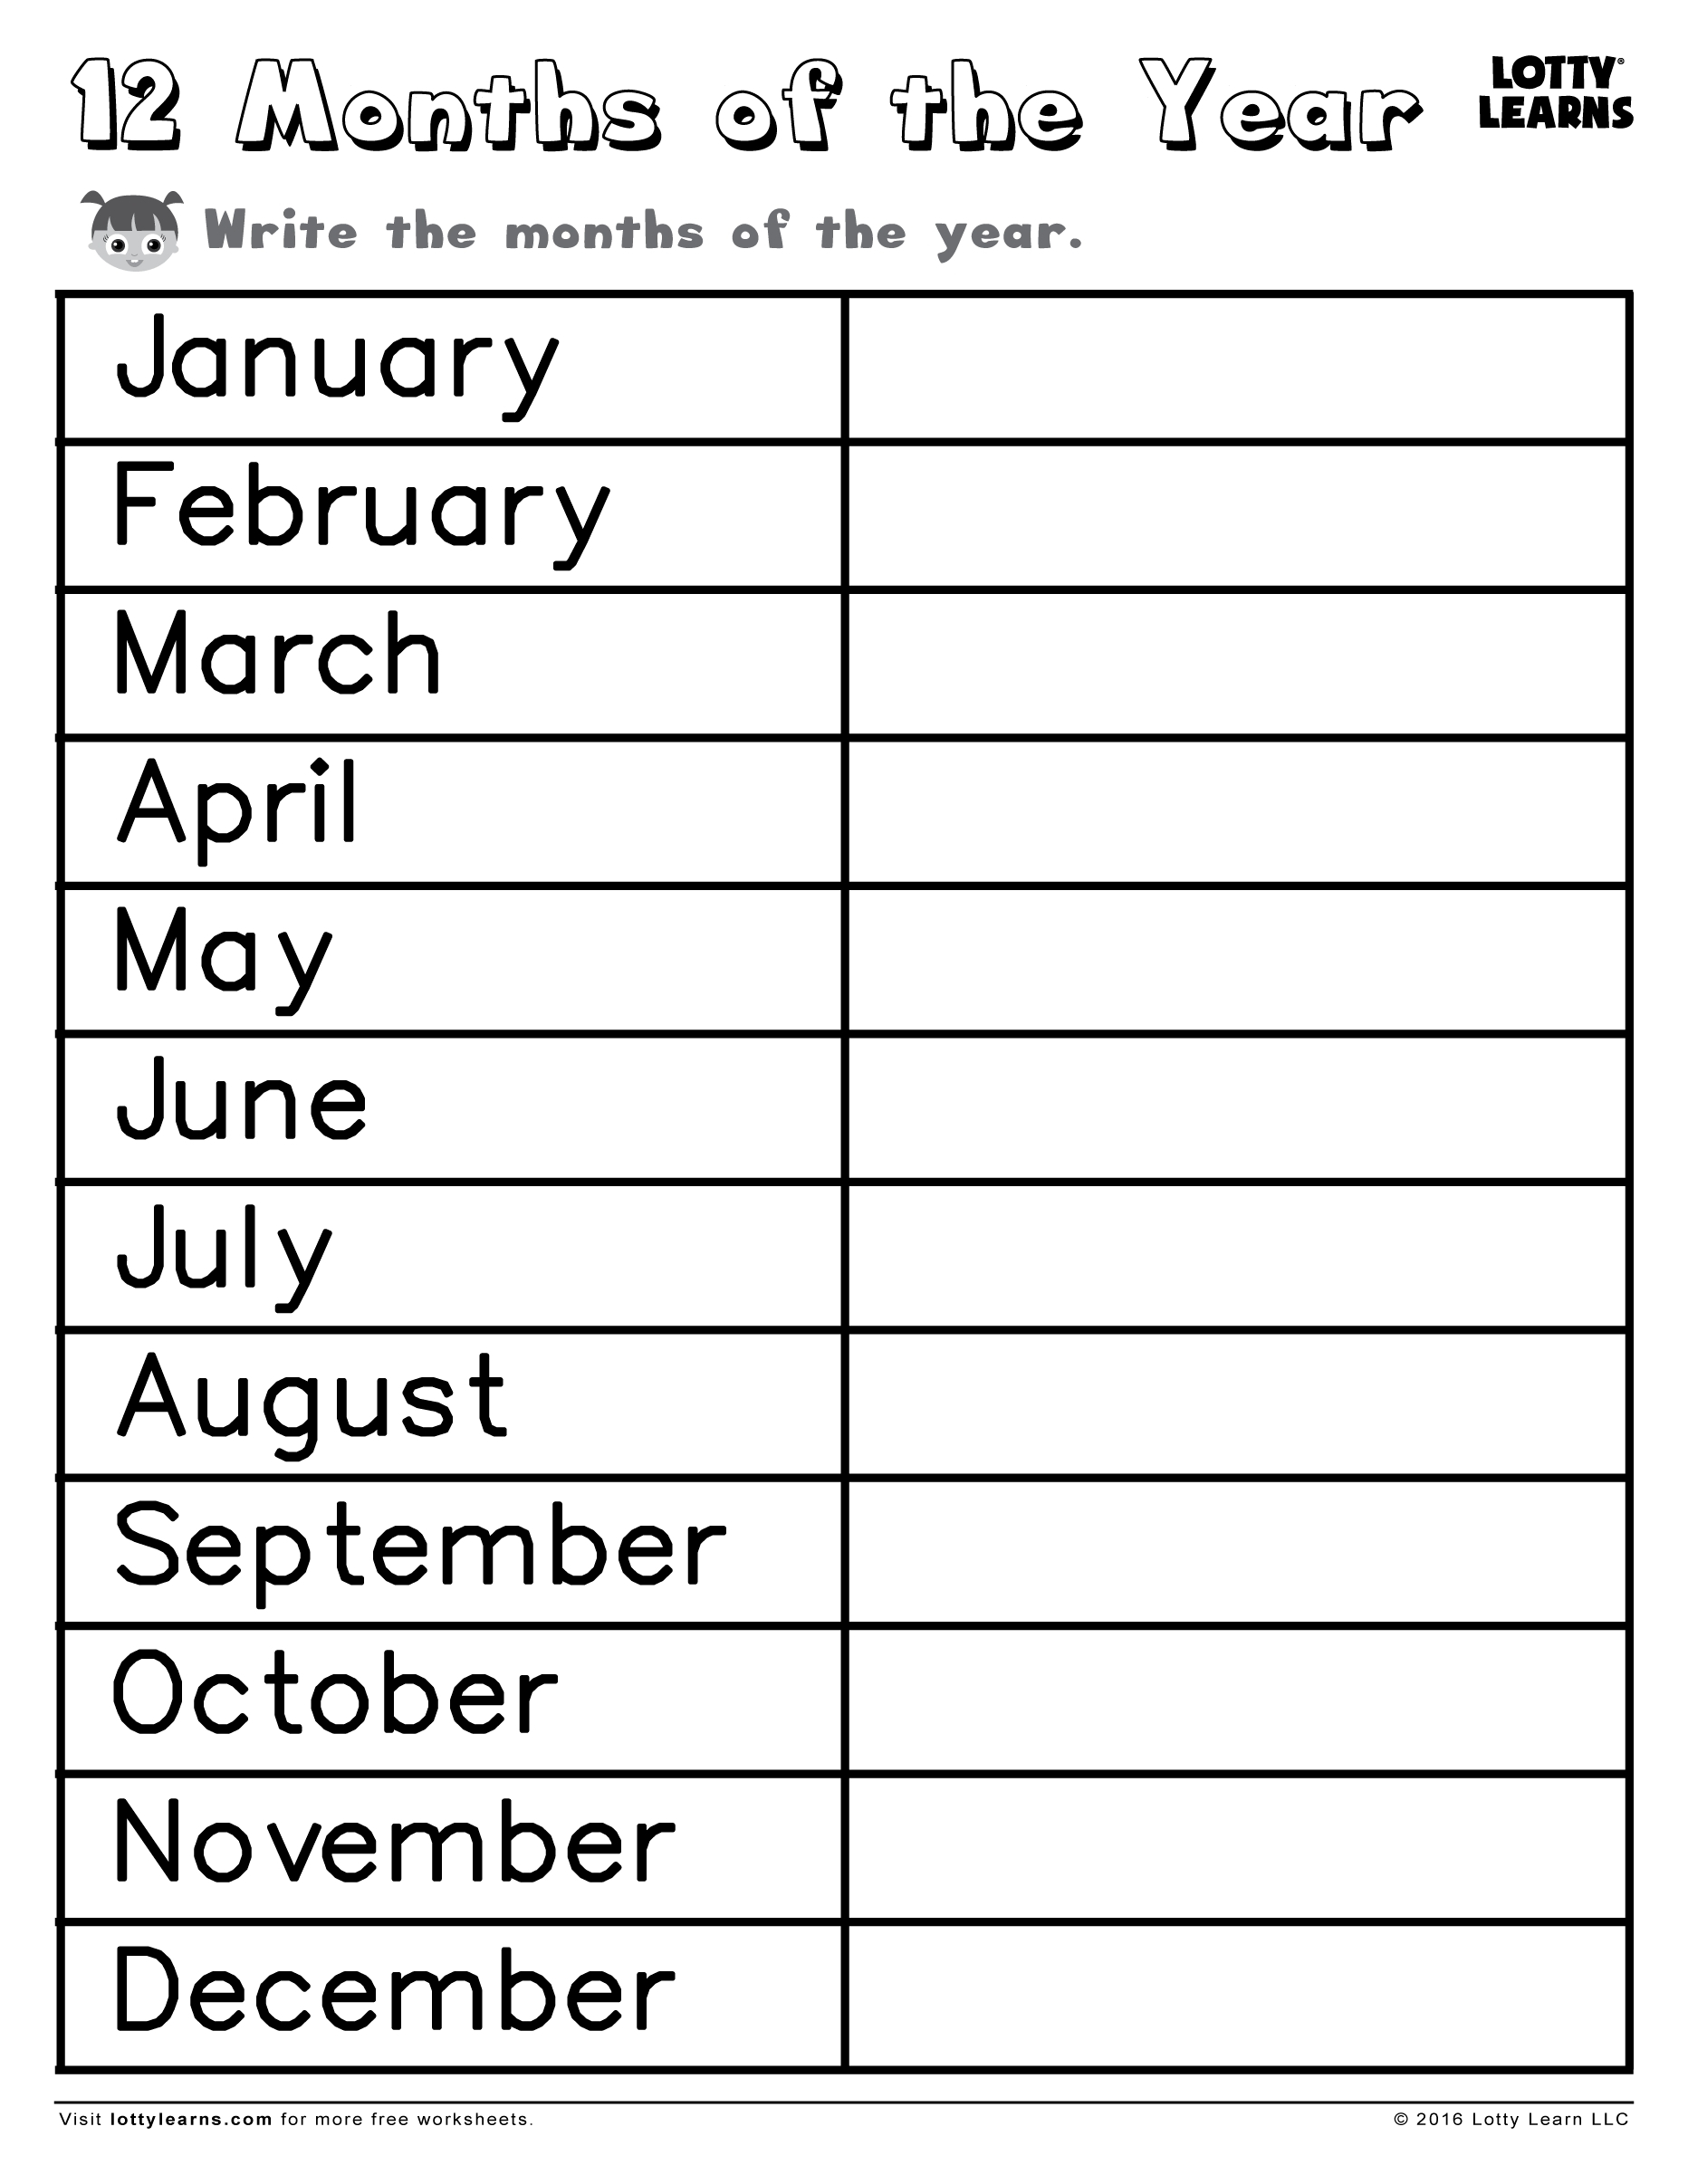 July December Writing Months Of The Year Worksheet